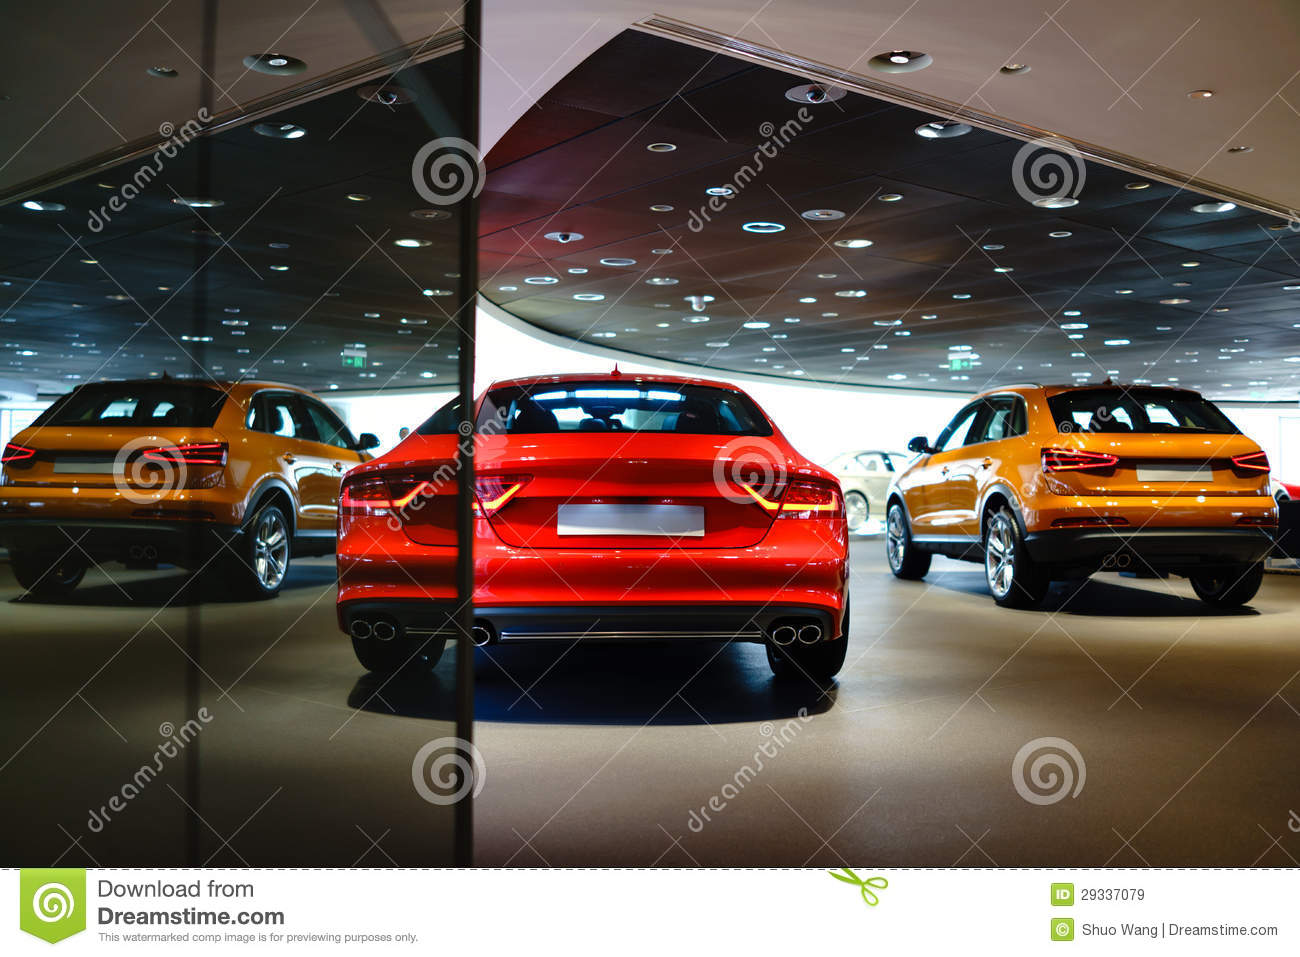 Expensive Car For Sale Or Gift Royalty Free Stock Image: Cars For Sale Royalty Free Stock Images